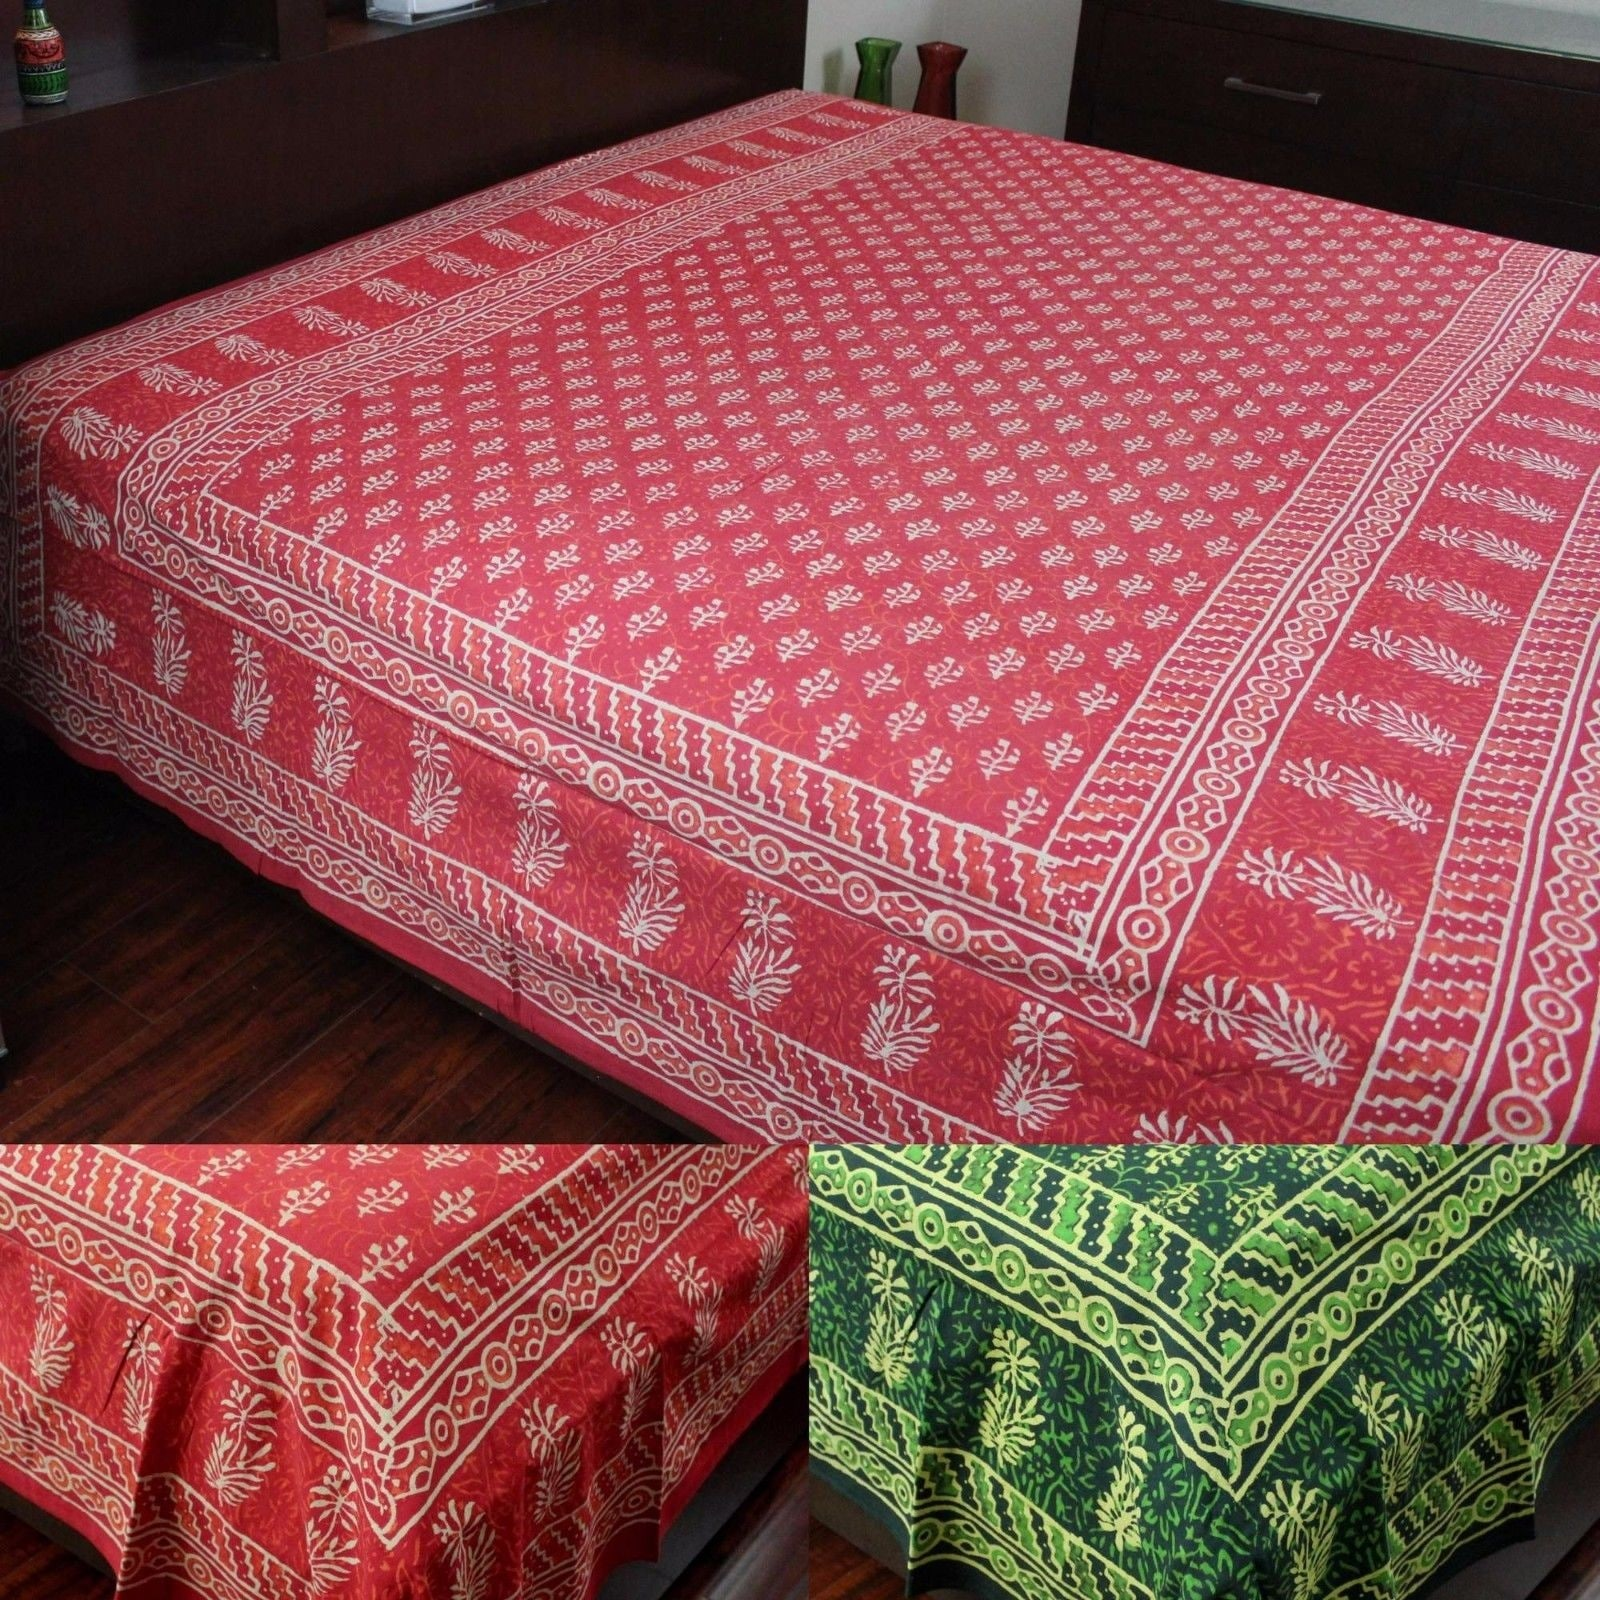 Indian Hand Block Print Cotton Bedspread Queen Blanket Throw Tapestry Bed Cover